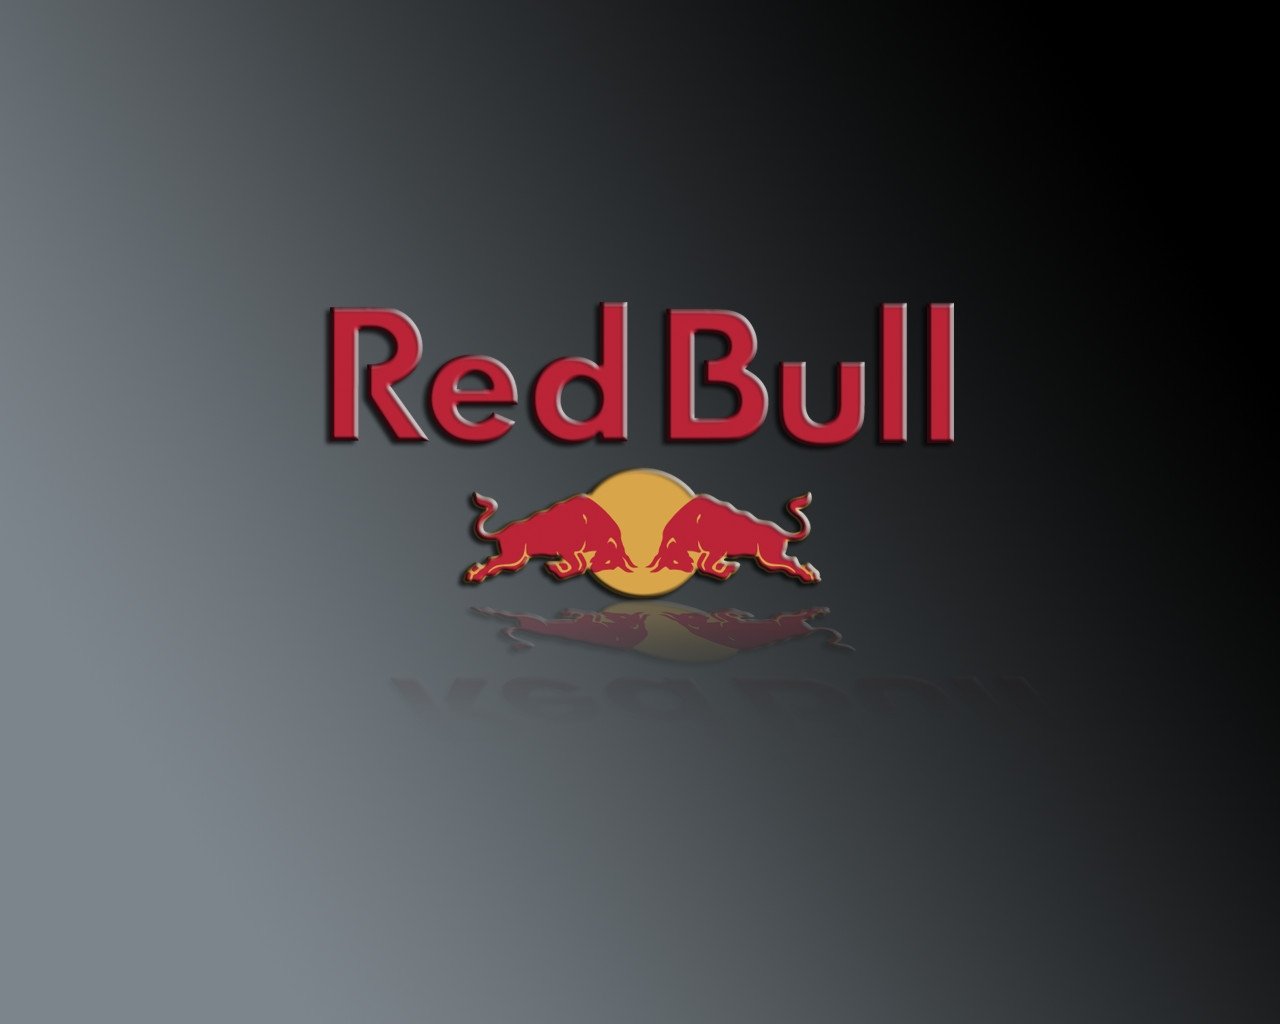 Red Bull Wallpaper HD